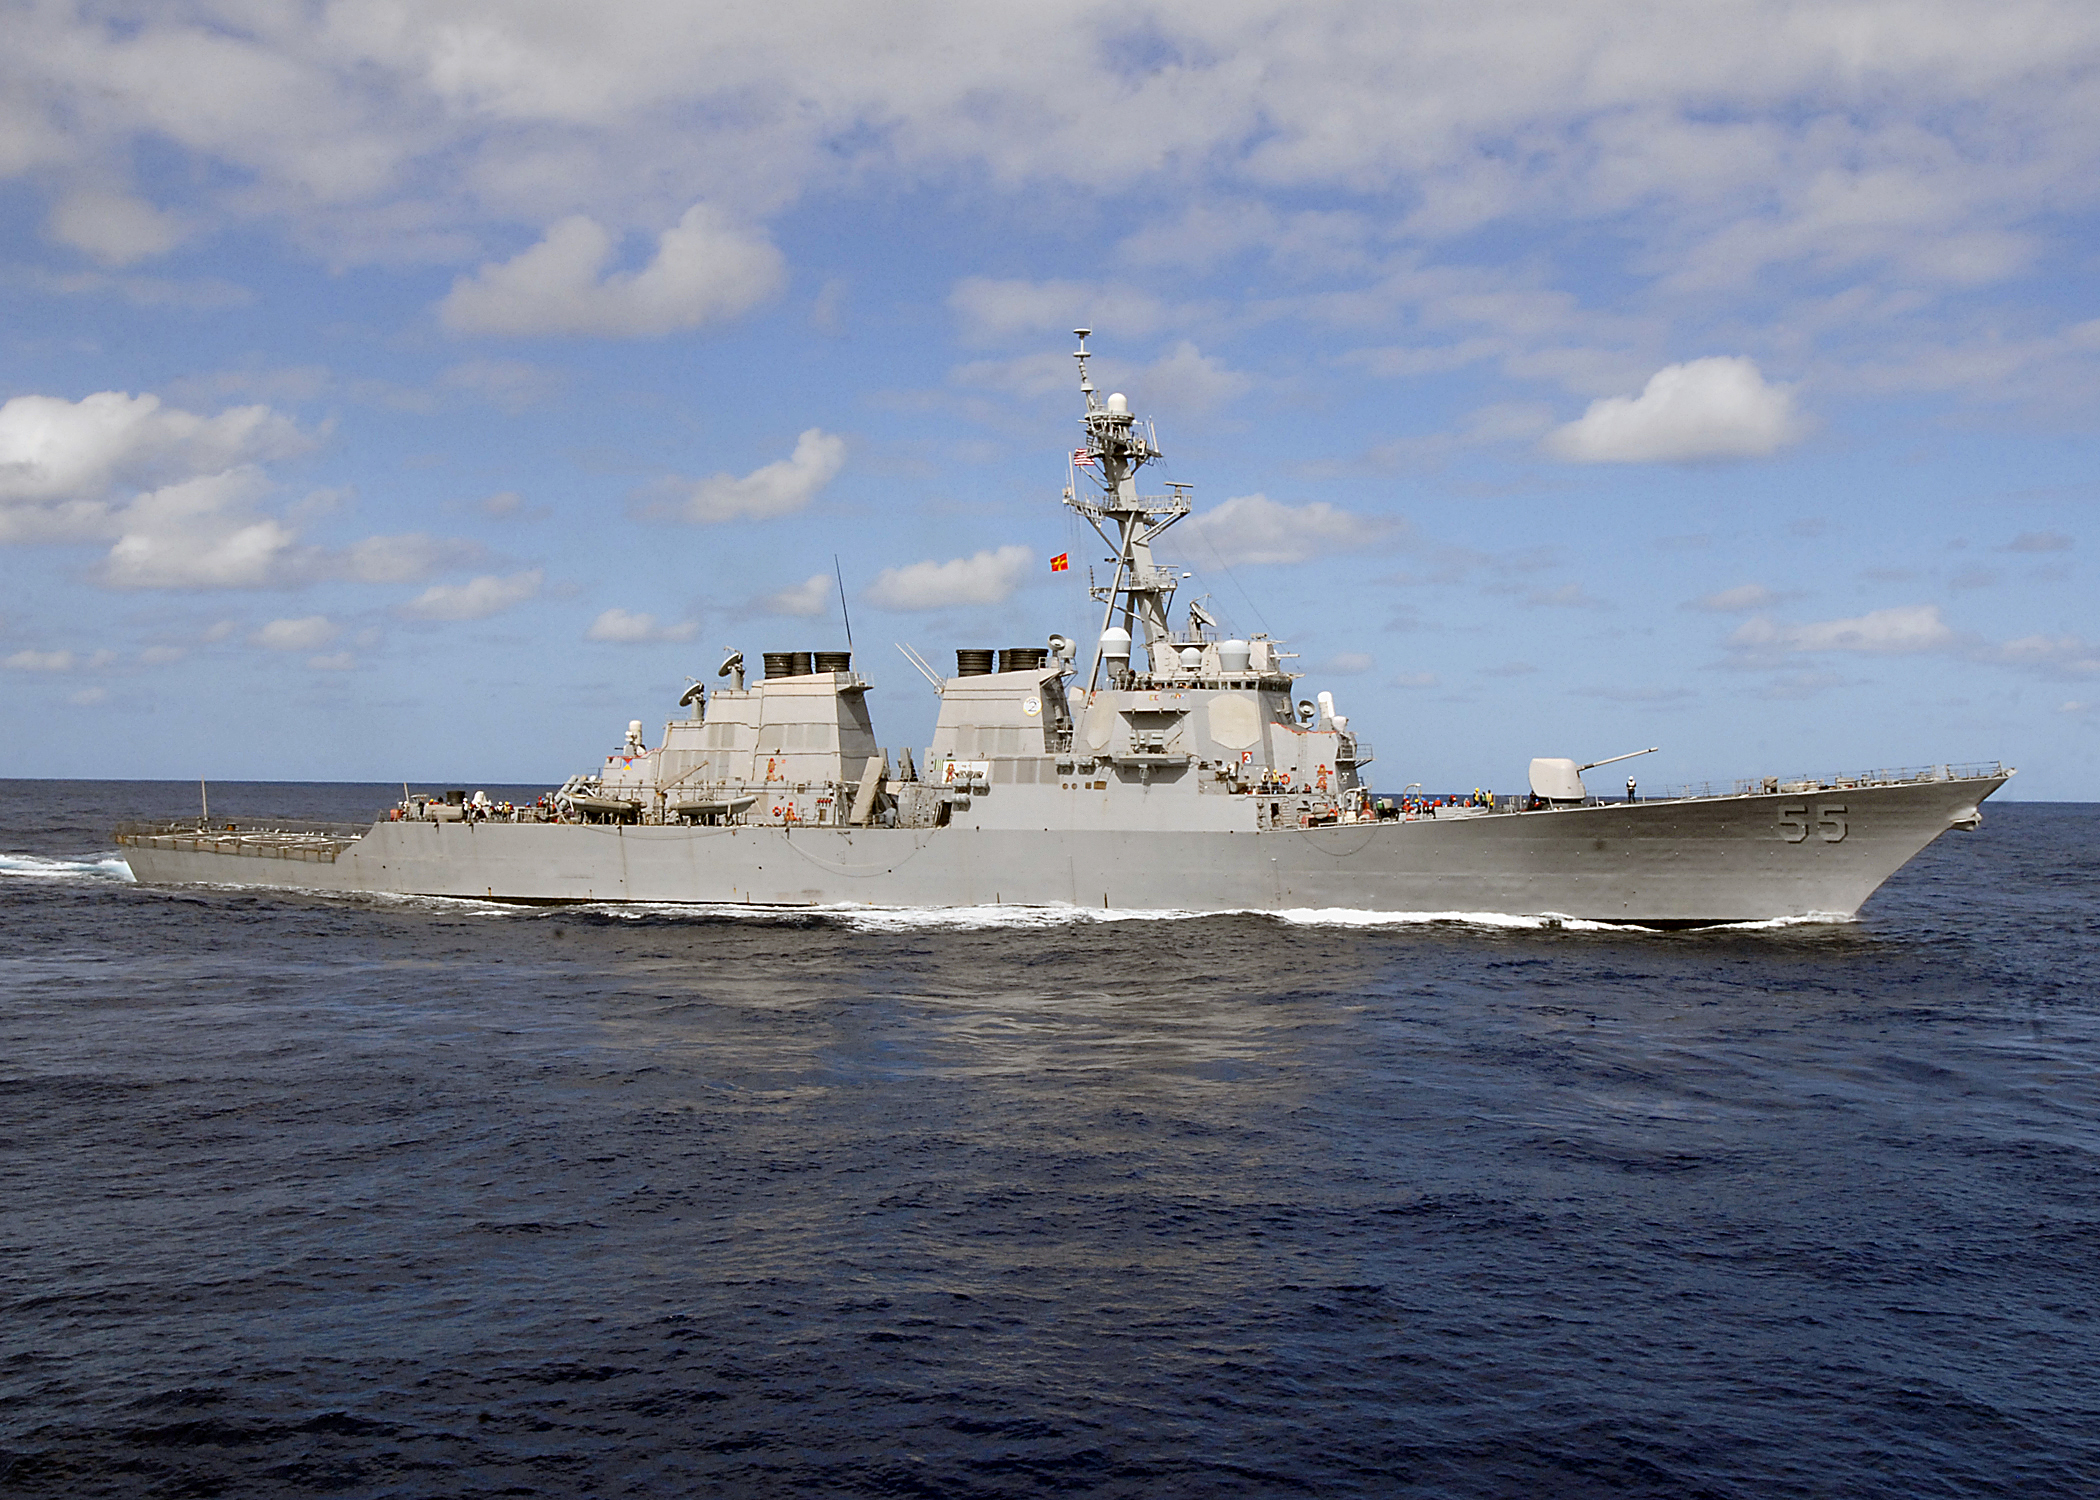 http://upload.wikimedia.org/wikipedia/commons/9/9c/US_Navy_100926-N-5324W-099_The_guided-missile_destroyer_USS_Stout_(DDG_55)_is_underway_during_routine_training_operations.jpg